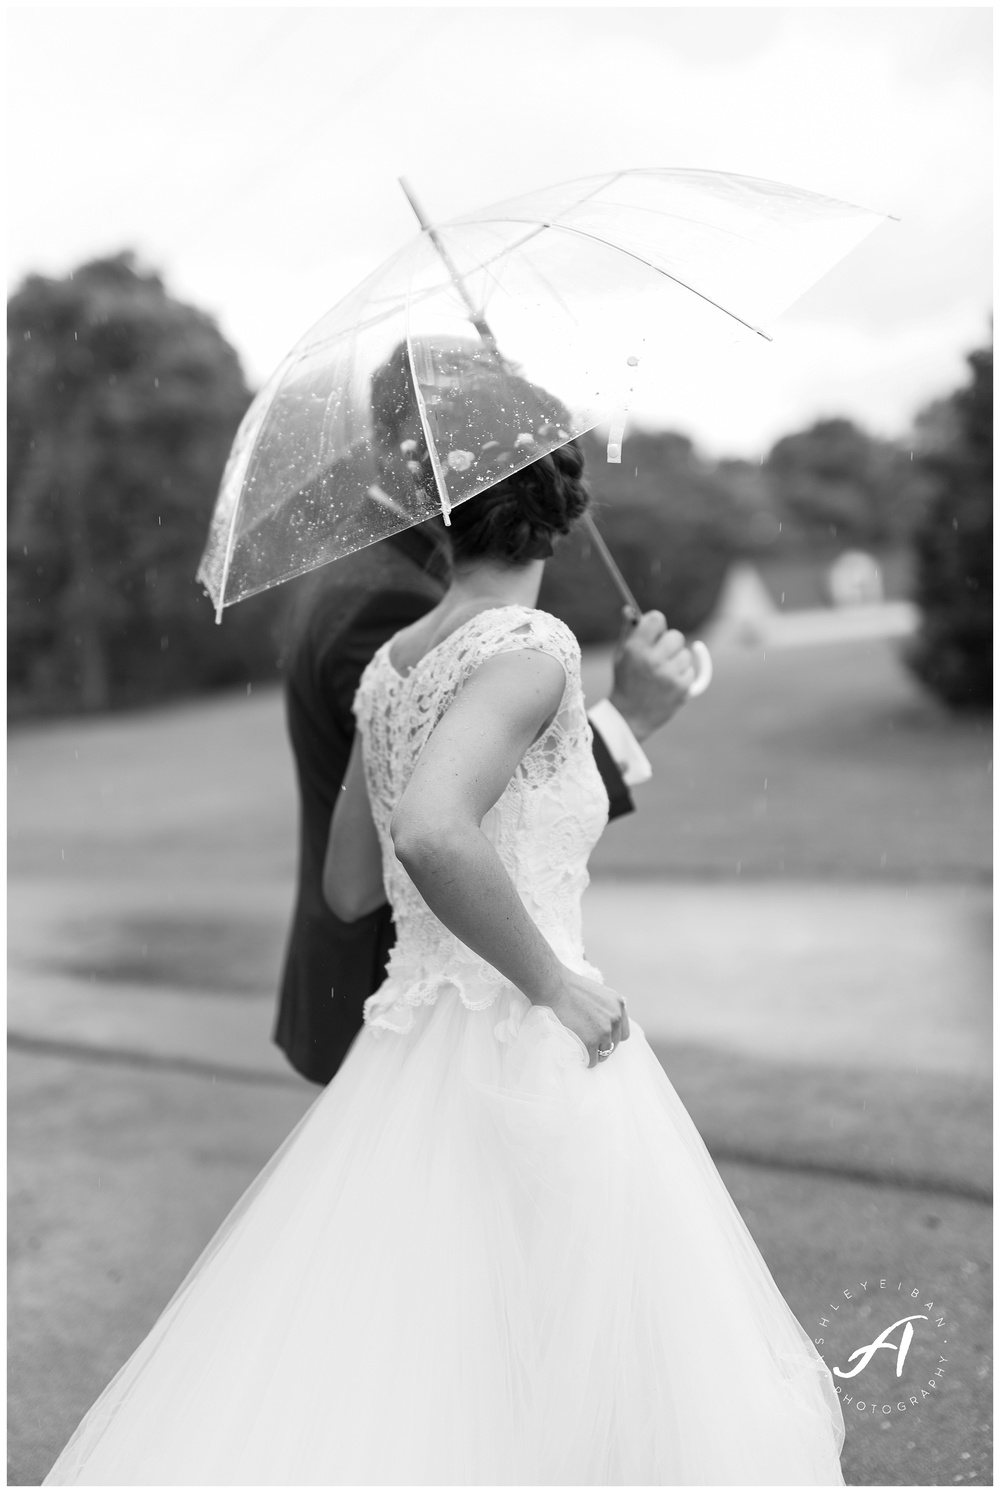 Rain on your wedding day || Lynchburg Virginia Wedding Photographer || Ashley Eiban Photography || www.ashleyeiban.com